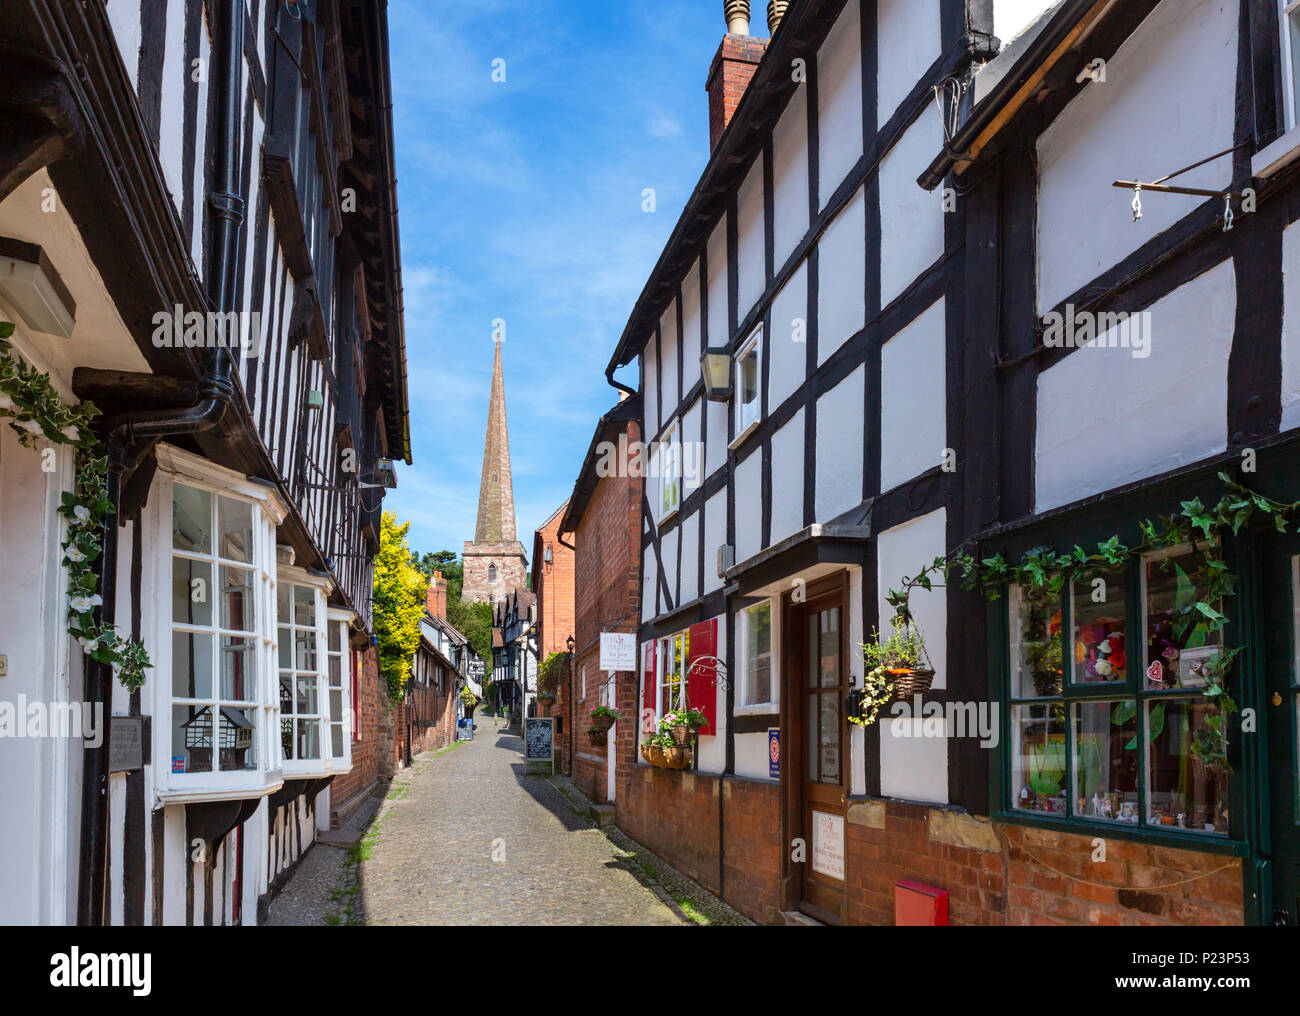 Traditional cobbled street in the old town, Church Lane, Ledbury, Herefordshire, England, UK - Stock Image